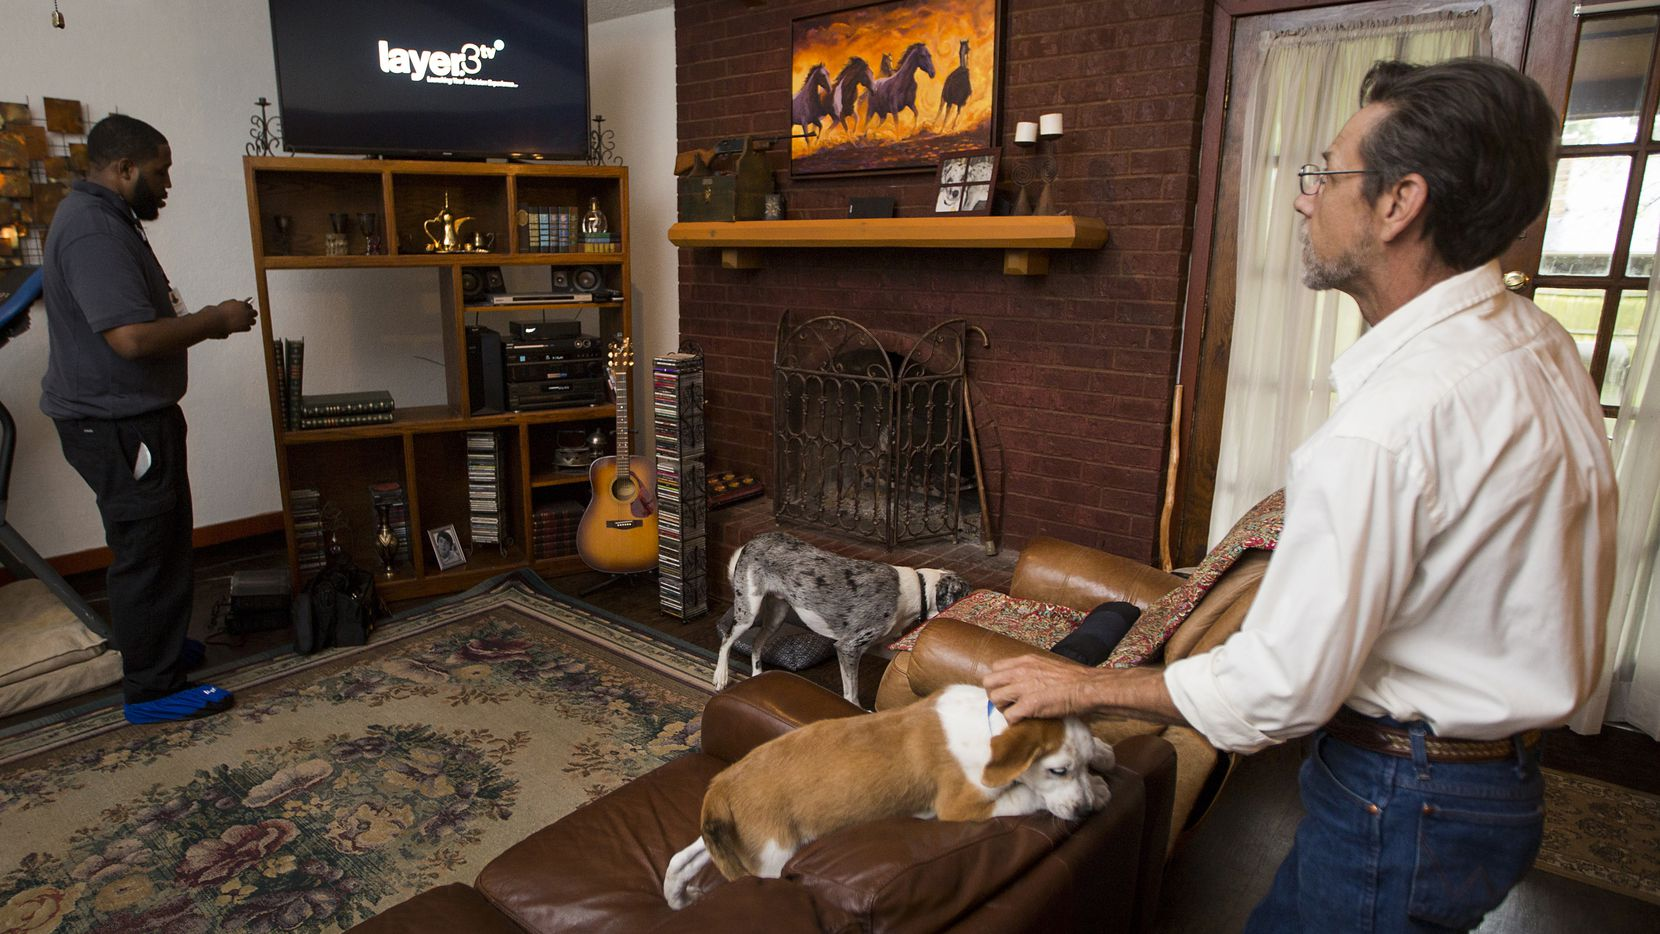 Stevan Grimes scratches his dog Norman as Keith Hamilton of Layer3 installs cable TV equipment at his home on Monday, April 17, 2017, in Benbrook, Texas. Layer3, is a new cable company that has expanded to the Dallas-Fort Worth area.